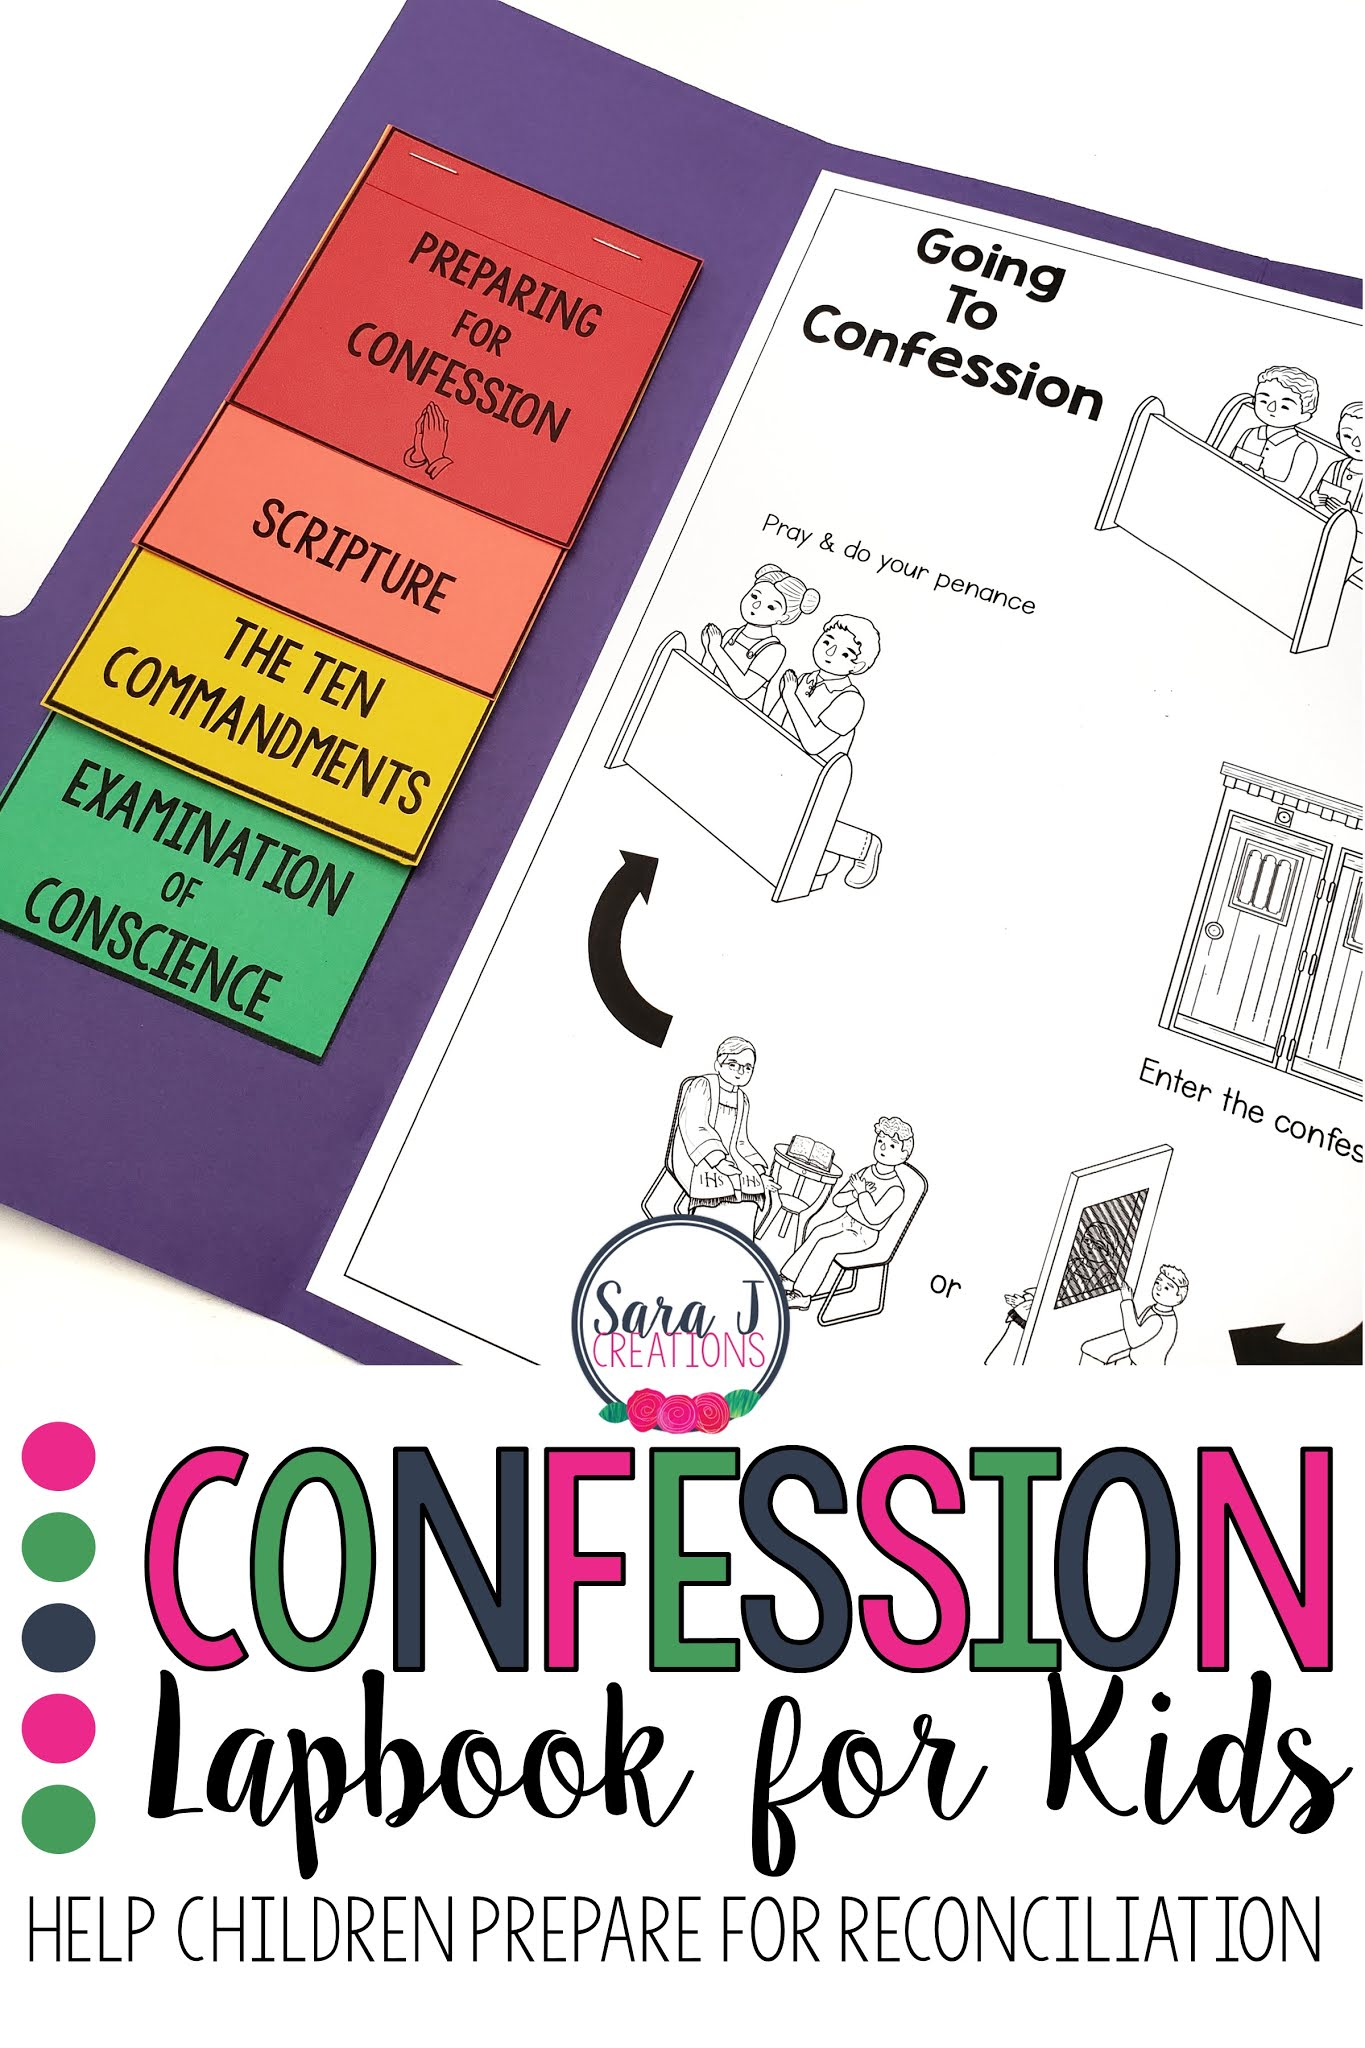 Help Catholic kids prepare for reconciliation with a confession lapbook. A simple tool to help them learn the steps of the Sacrament of Penance.